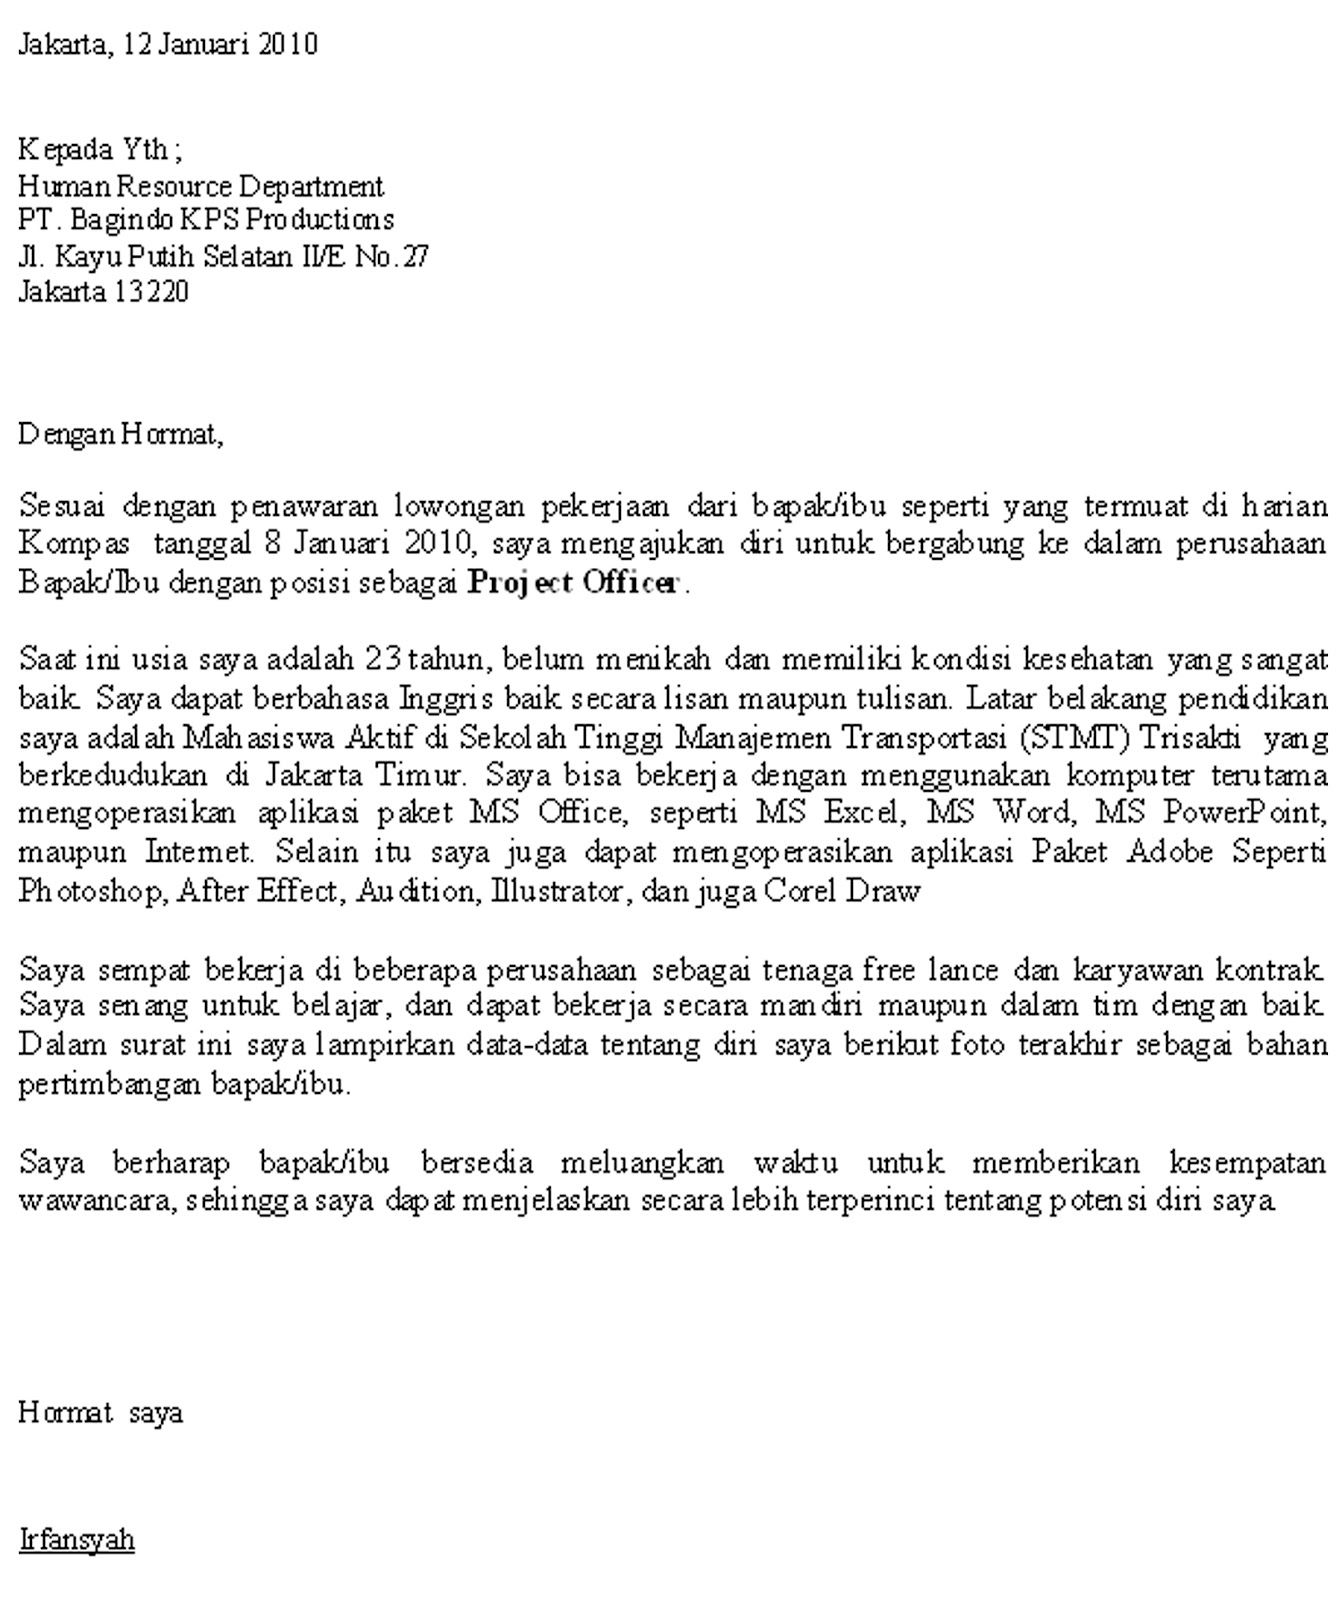 contoh application letter fresh graduate yang bagus Application letter contoh application letter fresh graduate yang bagus source: wwwbpjagapl related post of contoh application letter fresh graduate bahasa.